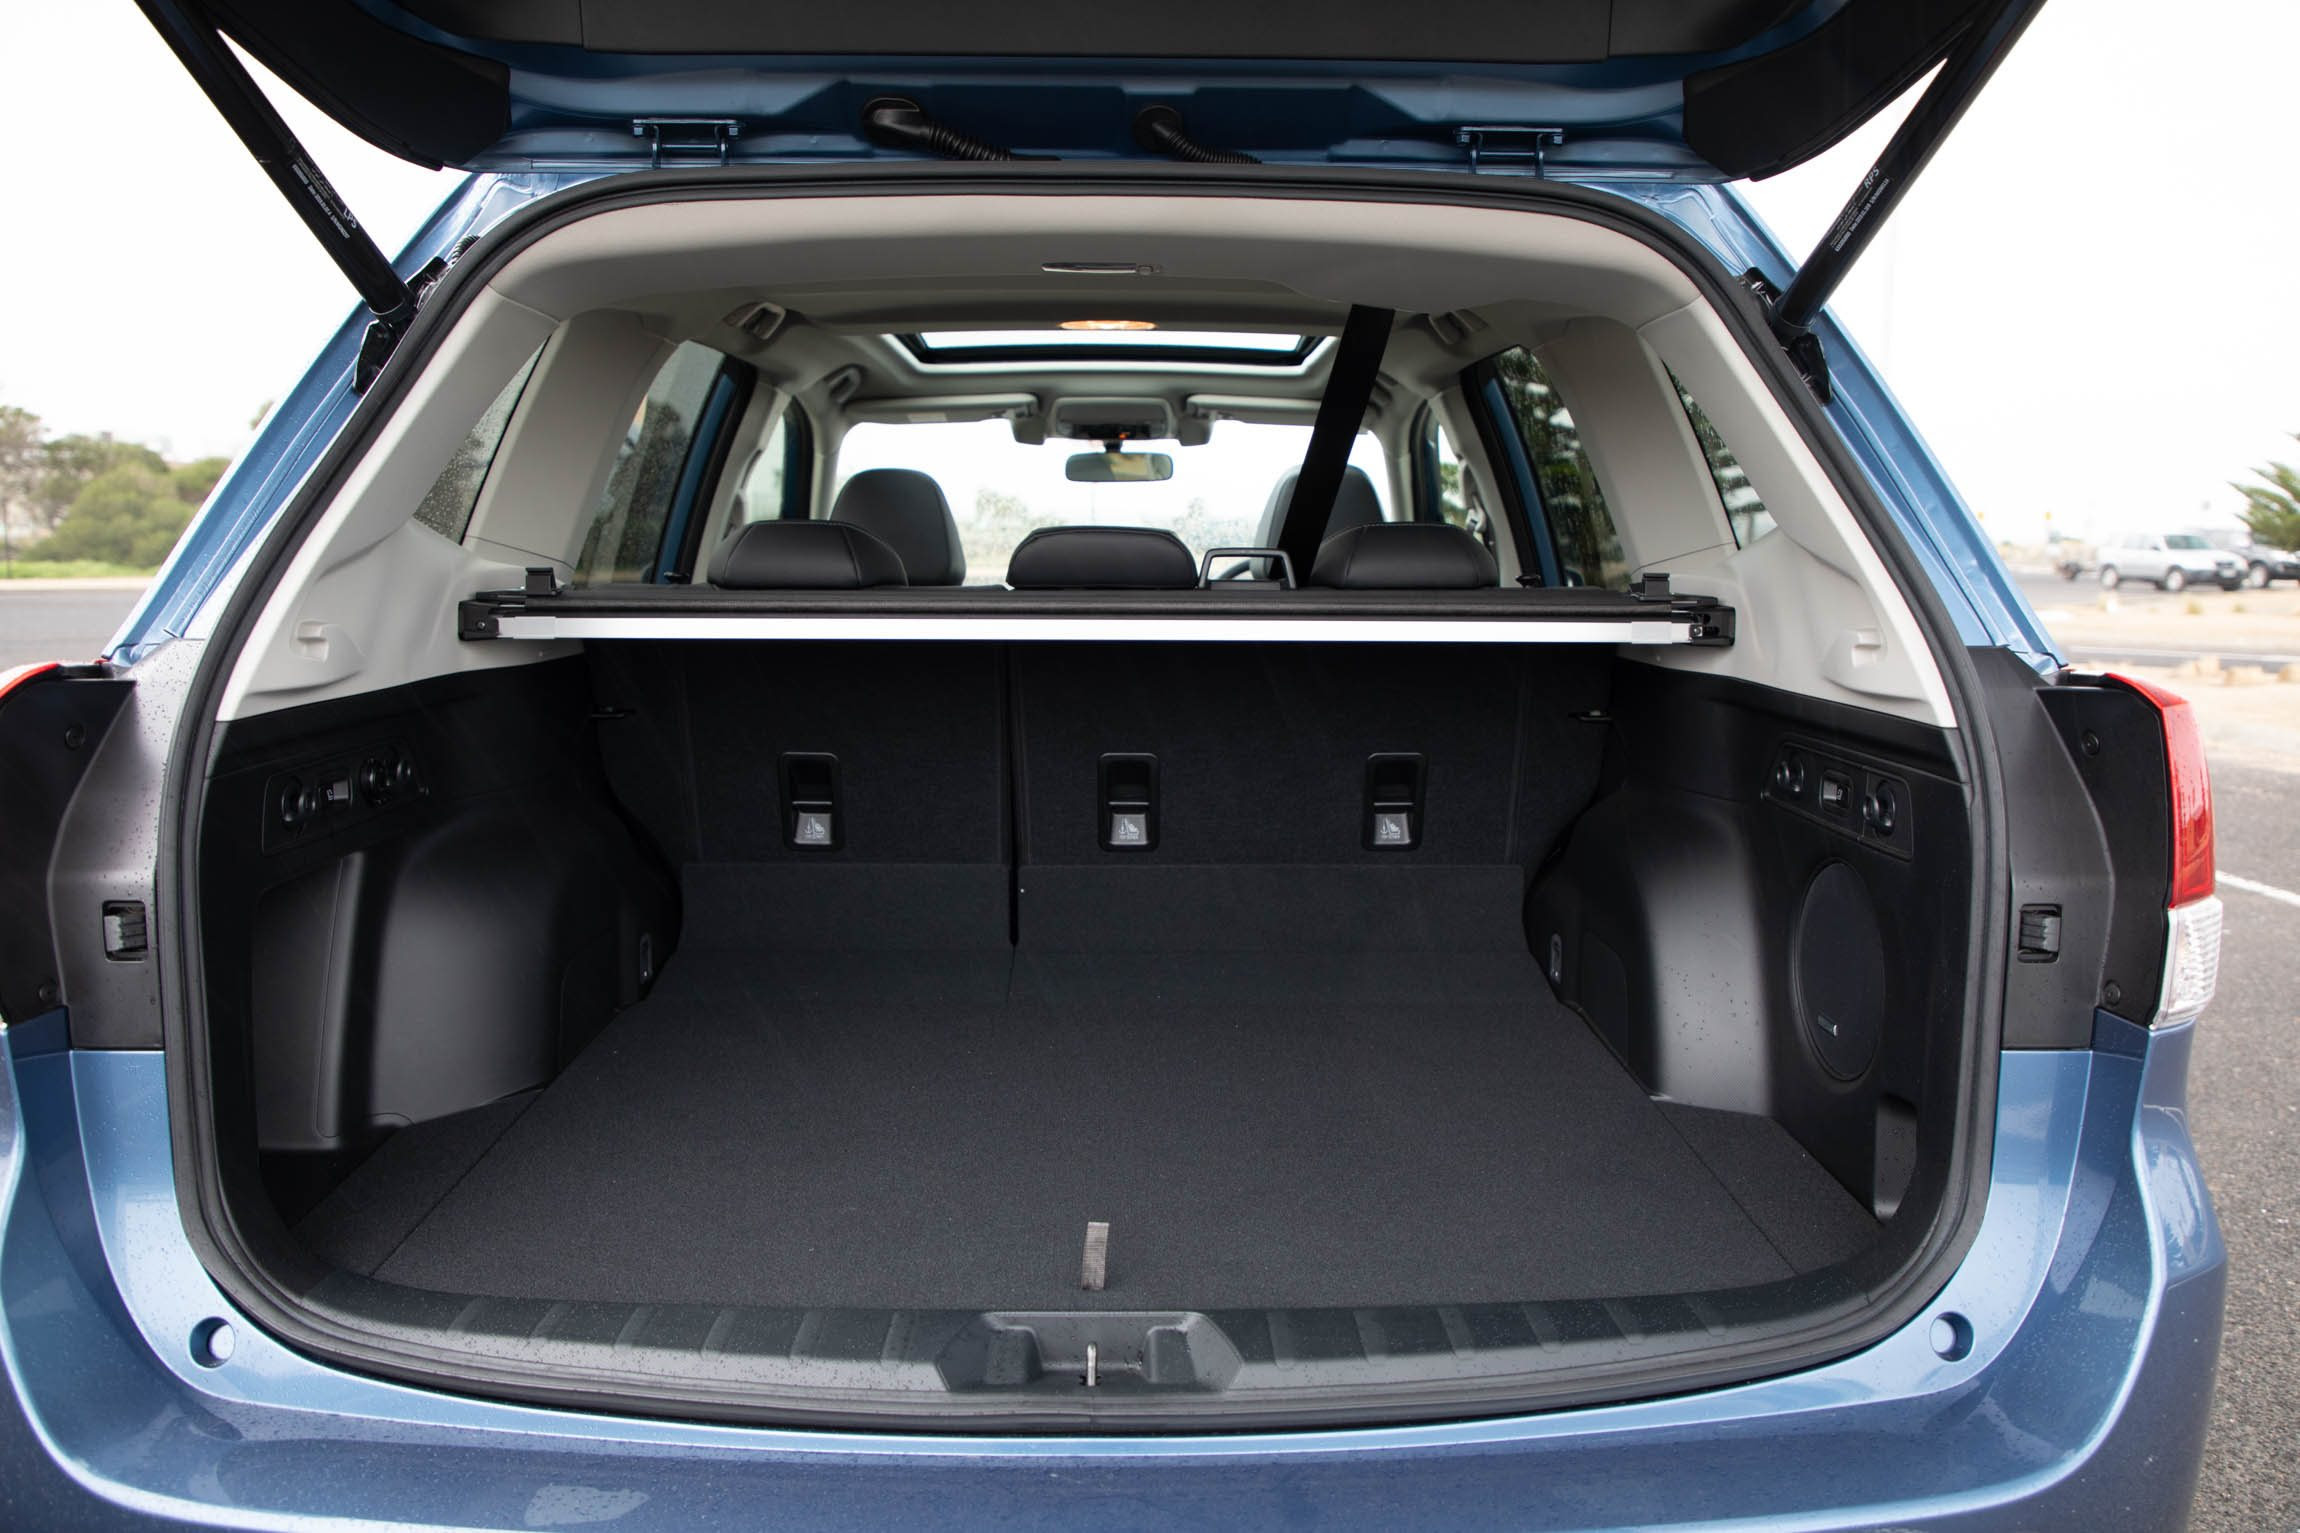 Subaru Forester 2.0i-s boot